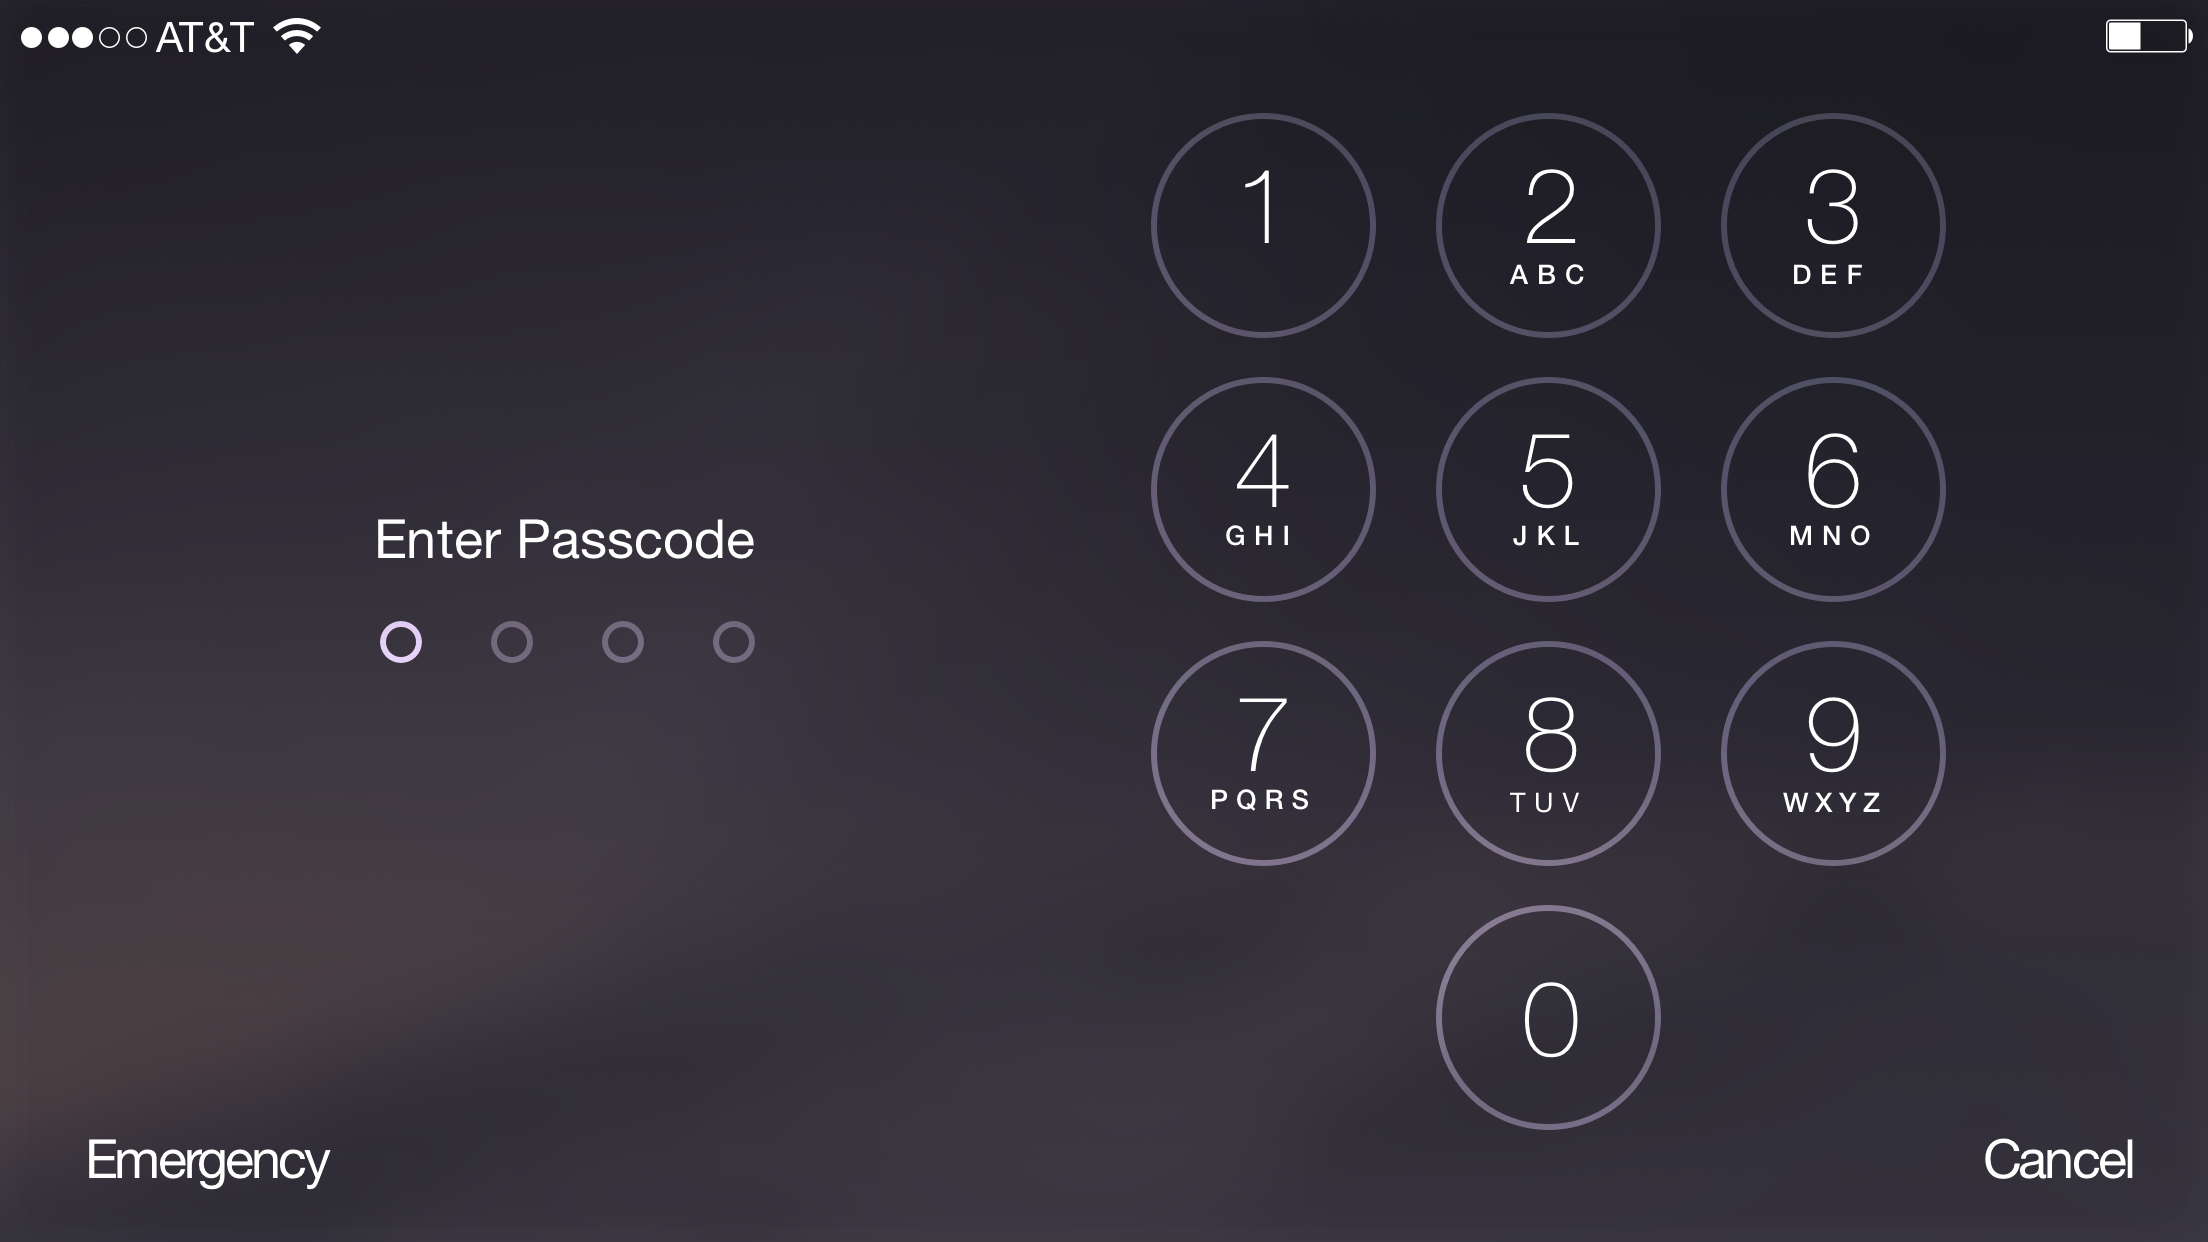 Landscape Lock Screen While Entering Passcode